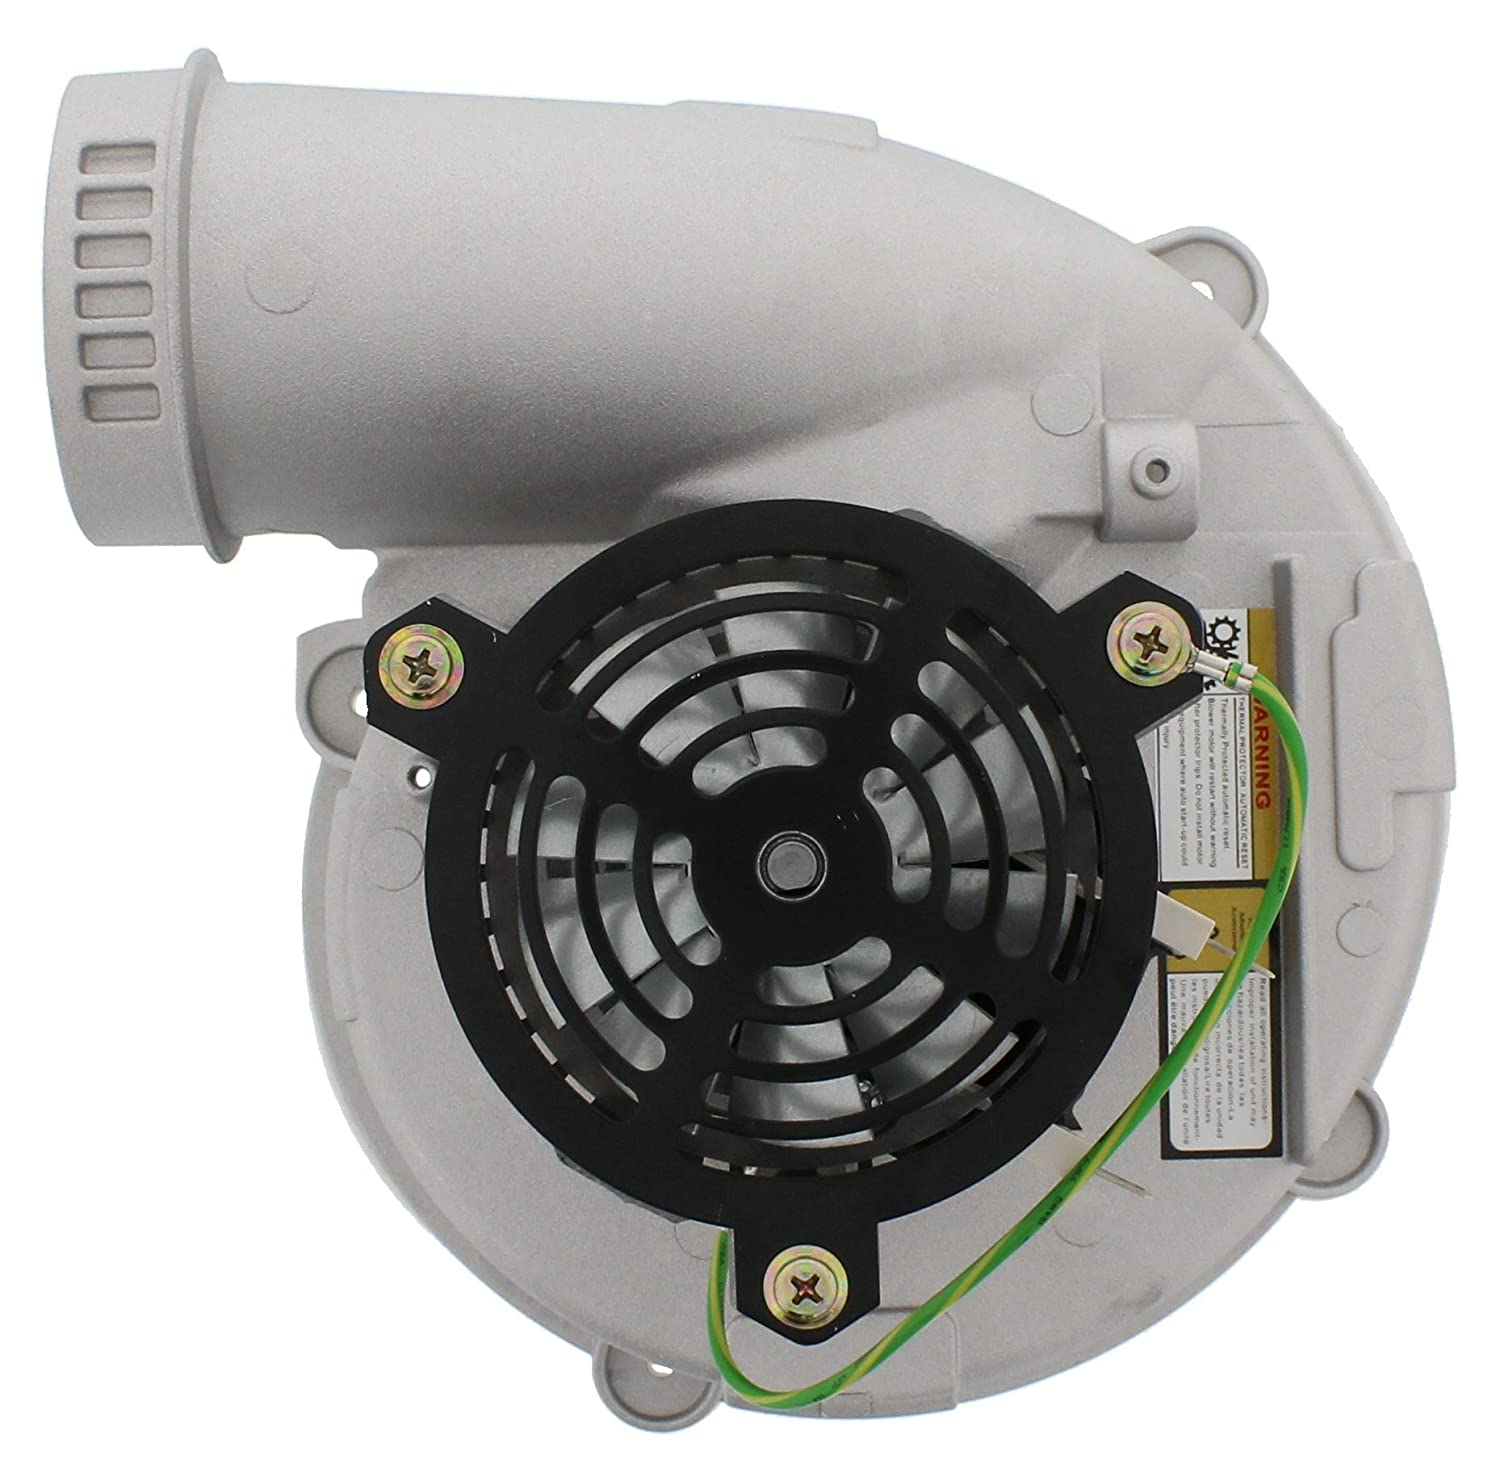 Rheem Inducer Motor Blower Replacement Part + Link to Installation Instructions - Replaces 70-24157-03